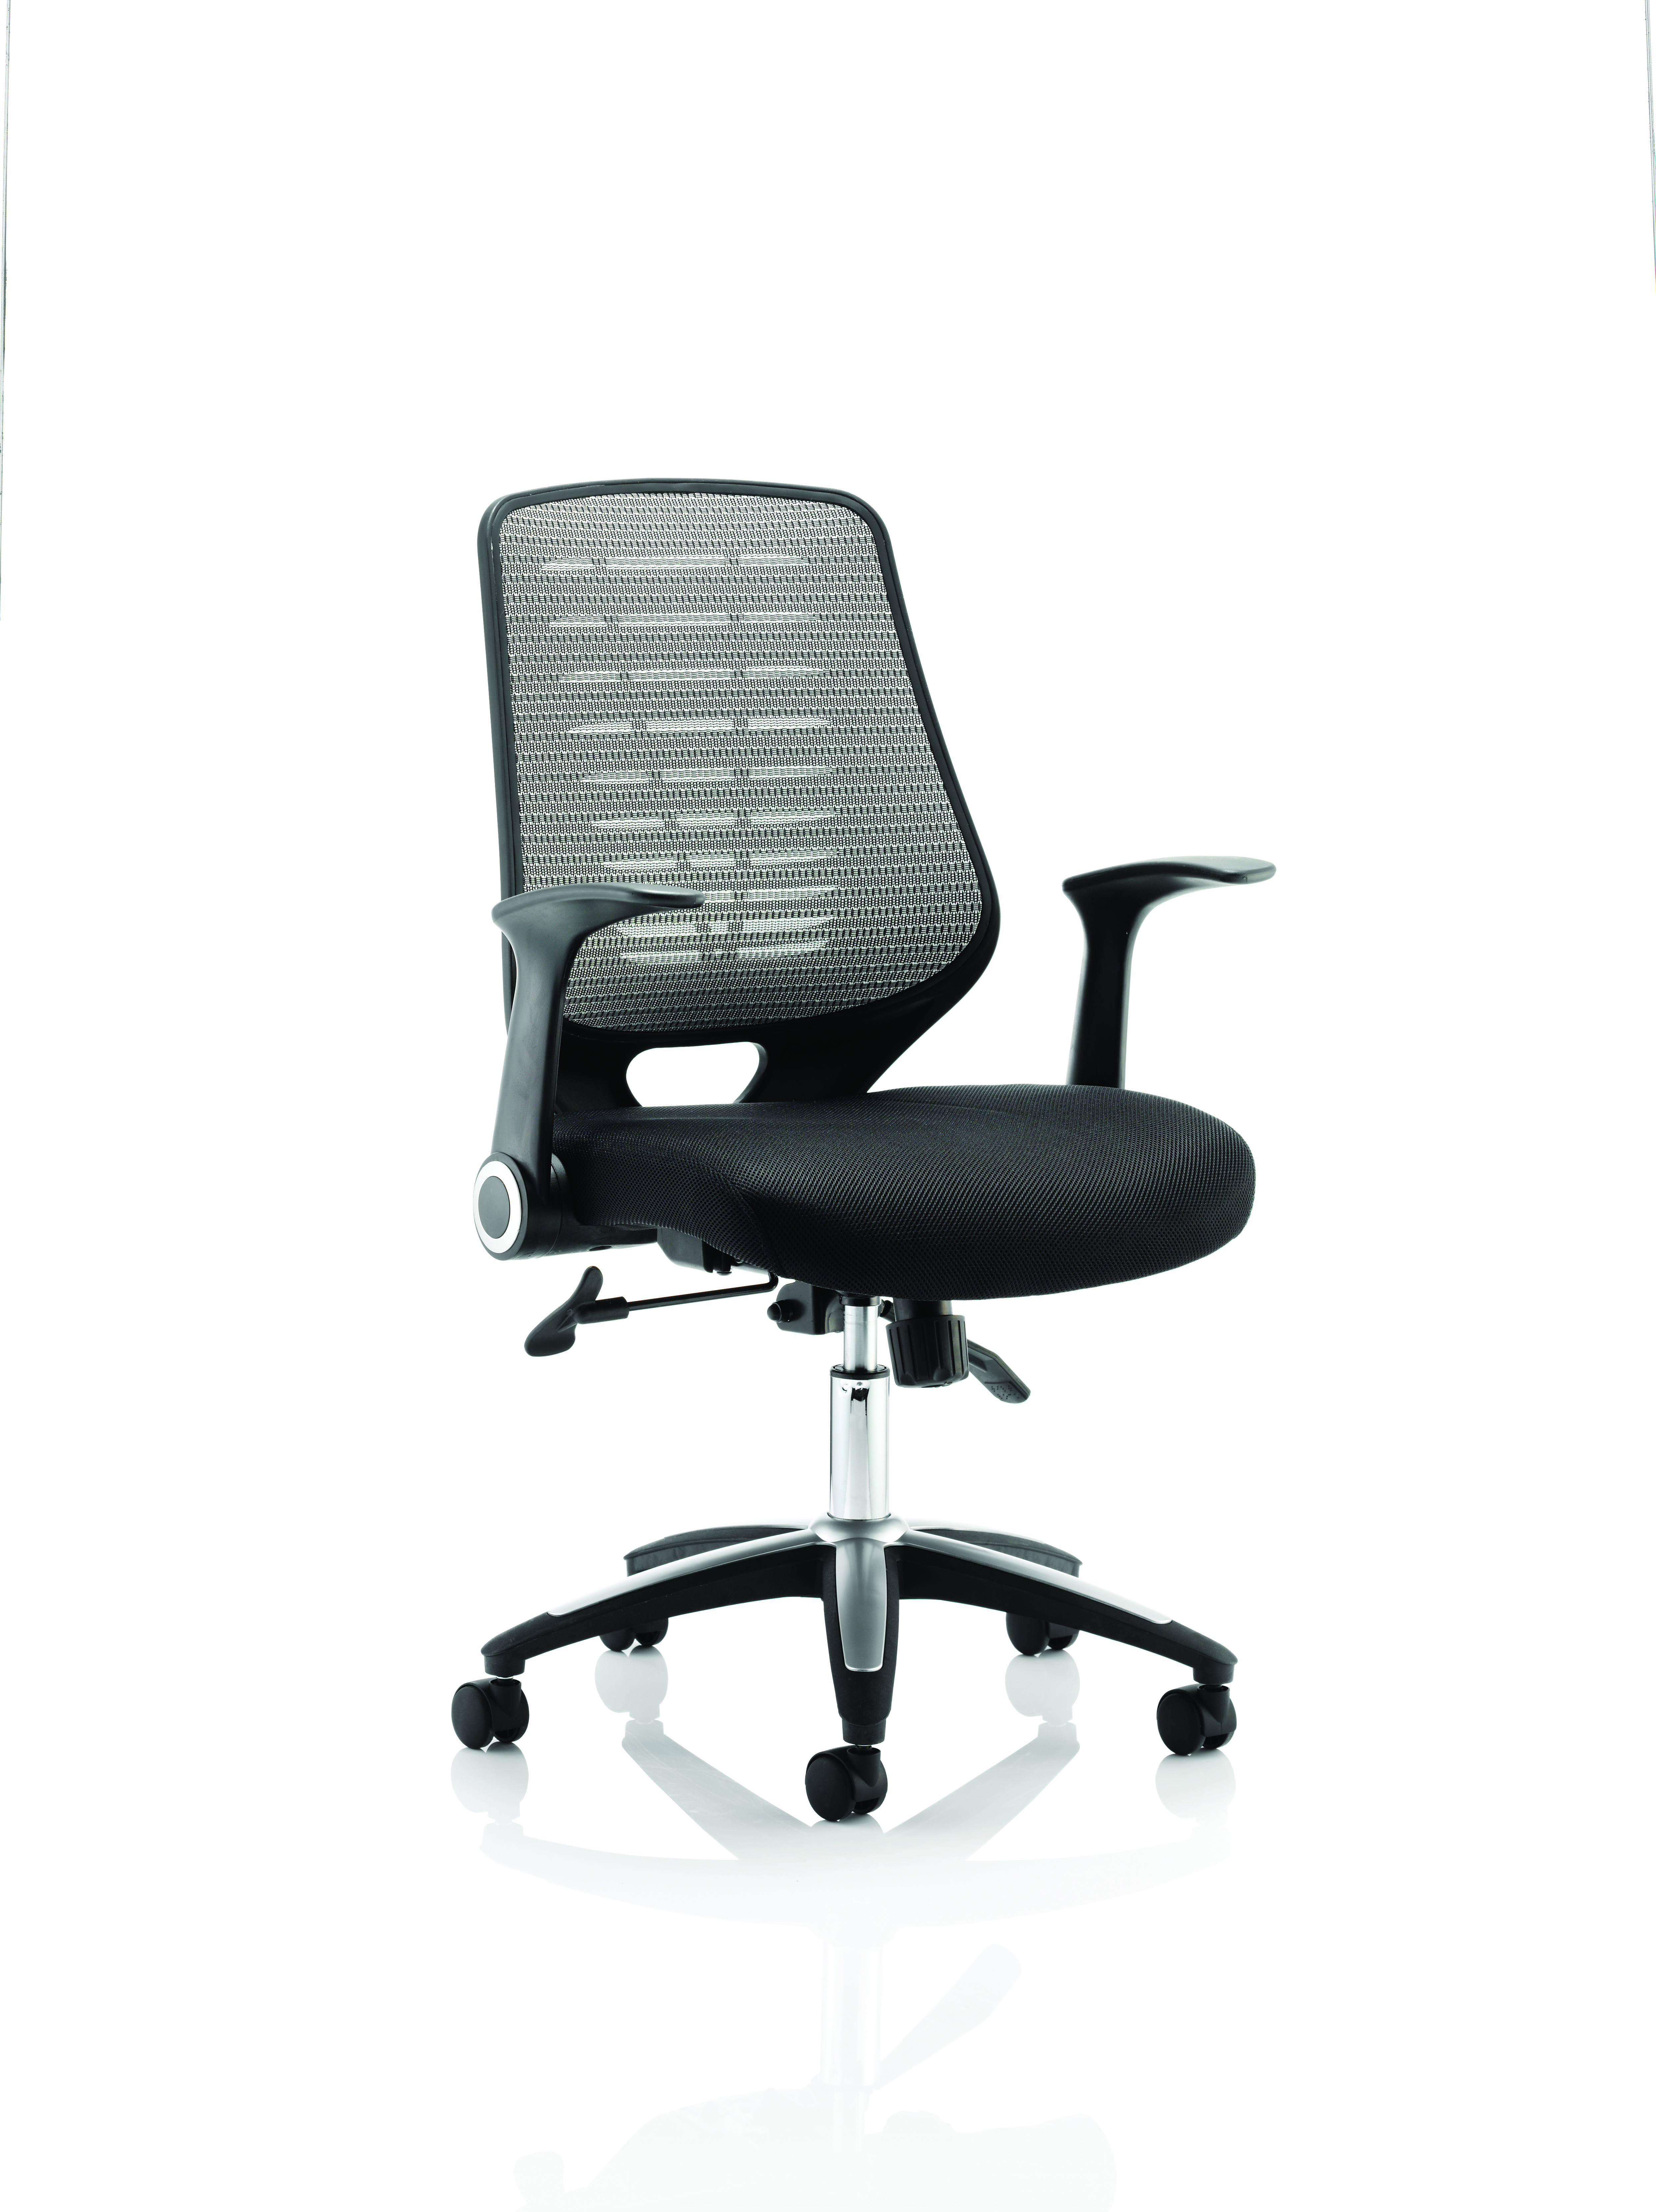 Desk Chairs Relay Chair Airmesh Seat Silver Back With Arms OP000116